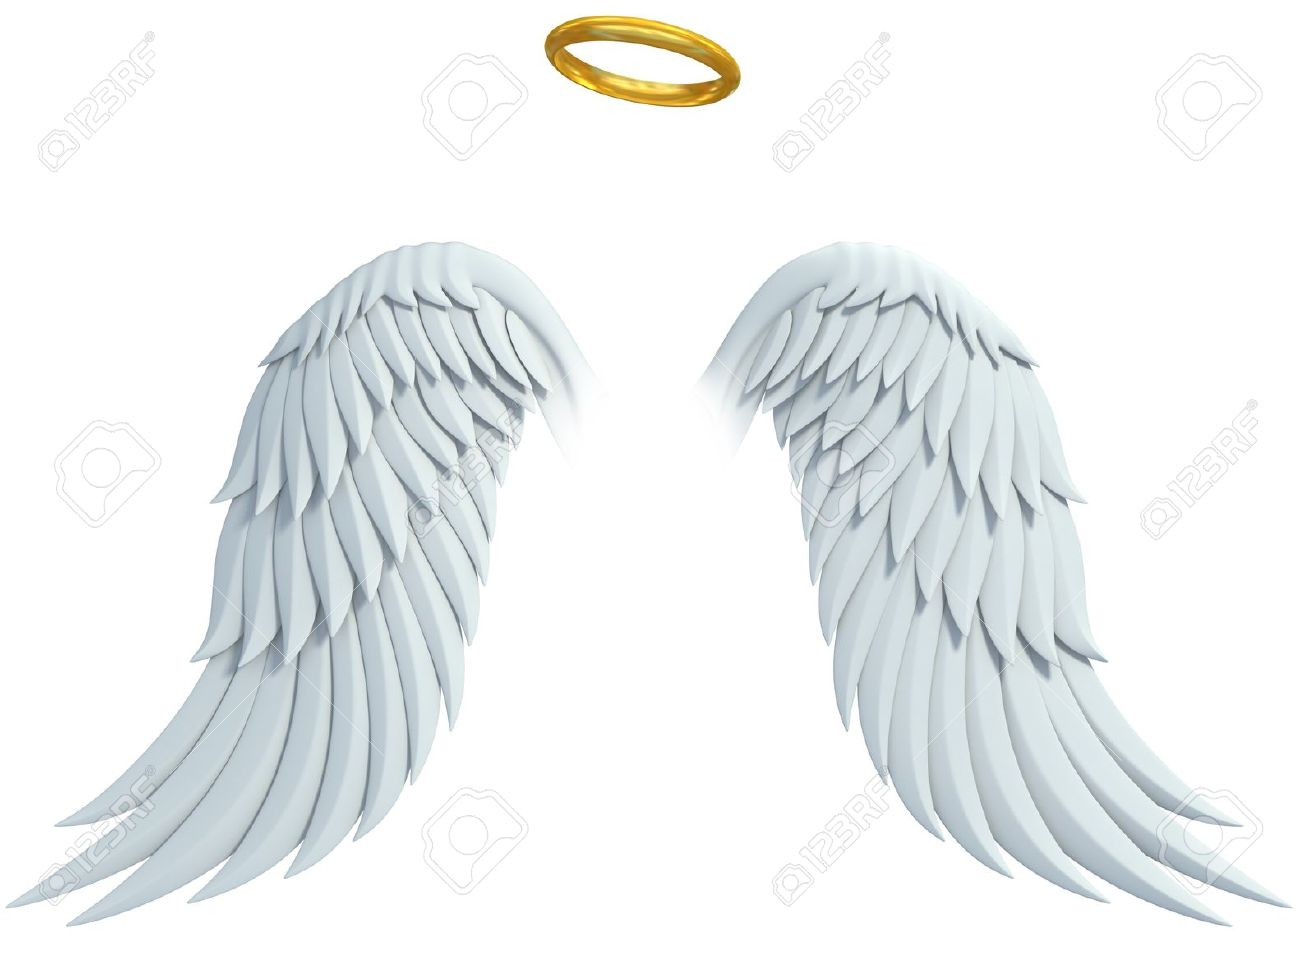 guardian angel: angel design elements - wings and golden halo isolated on the white background